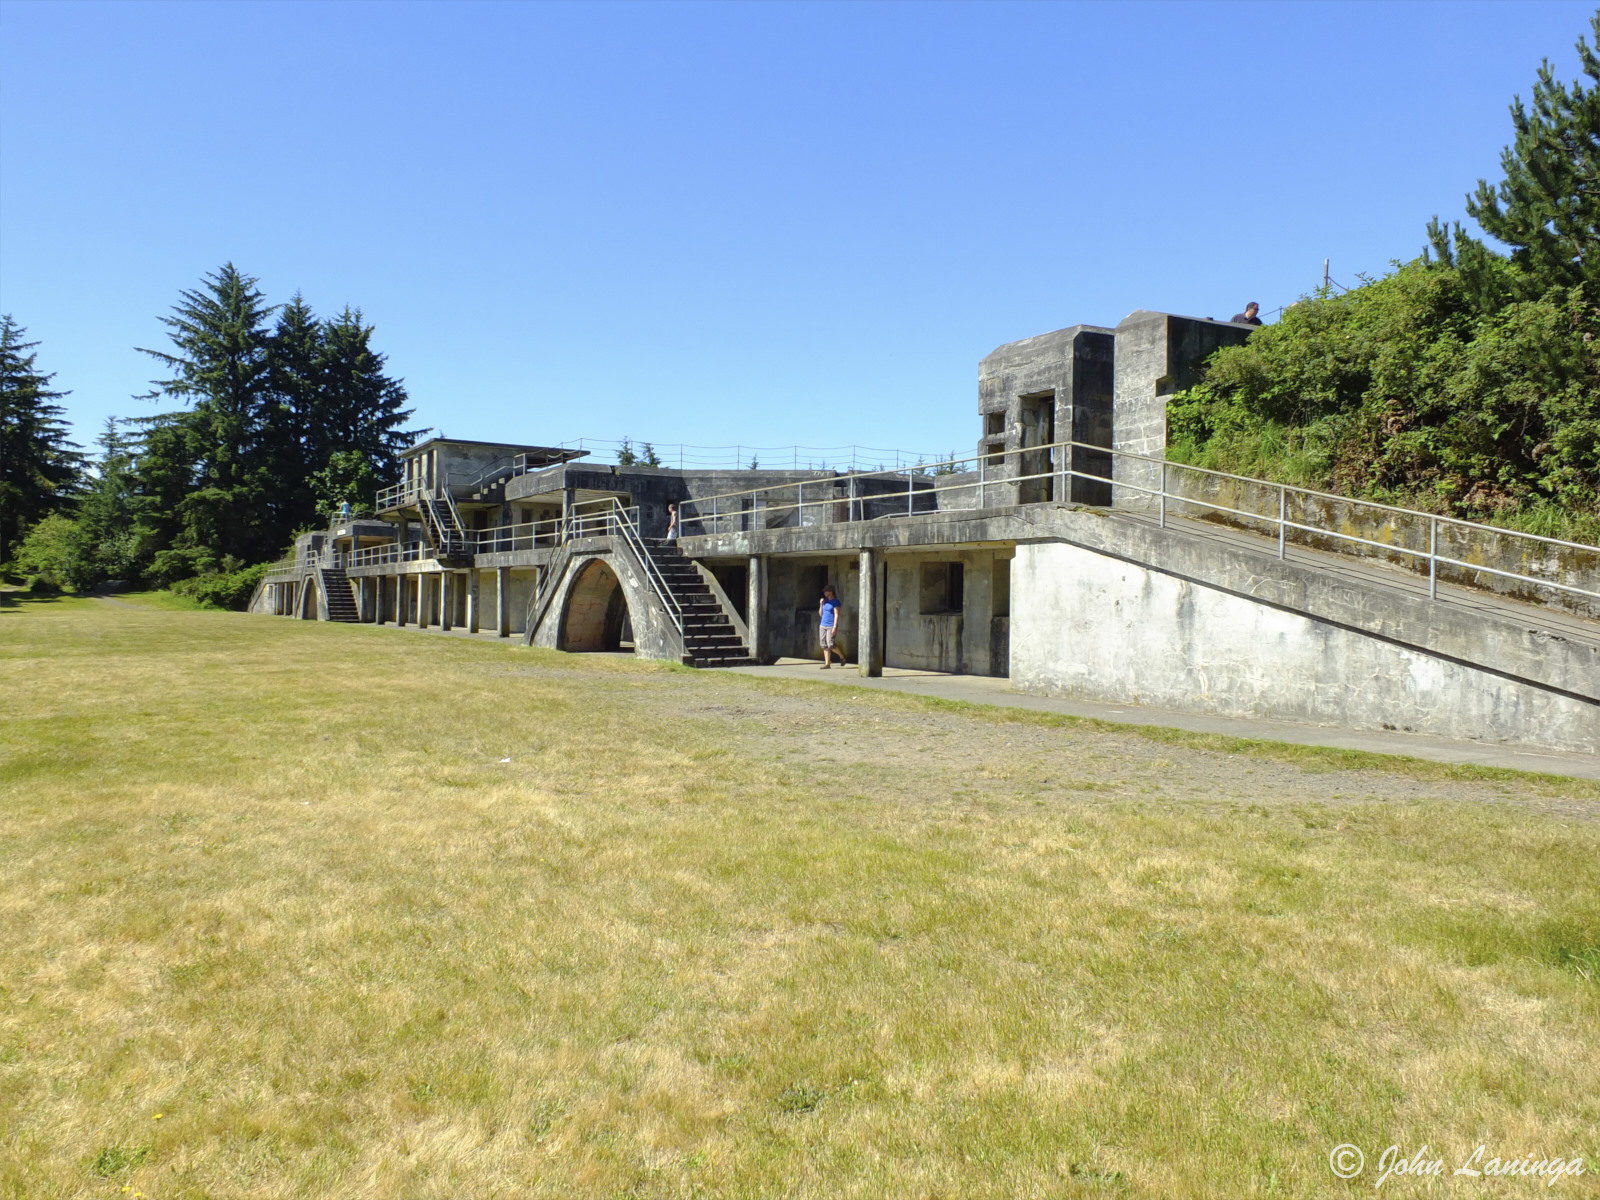 One of the batteries at Fort Stevens